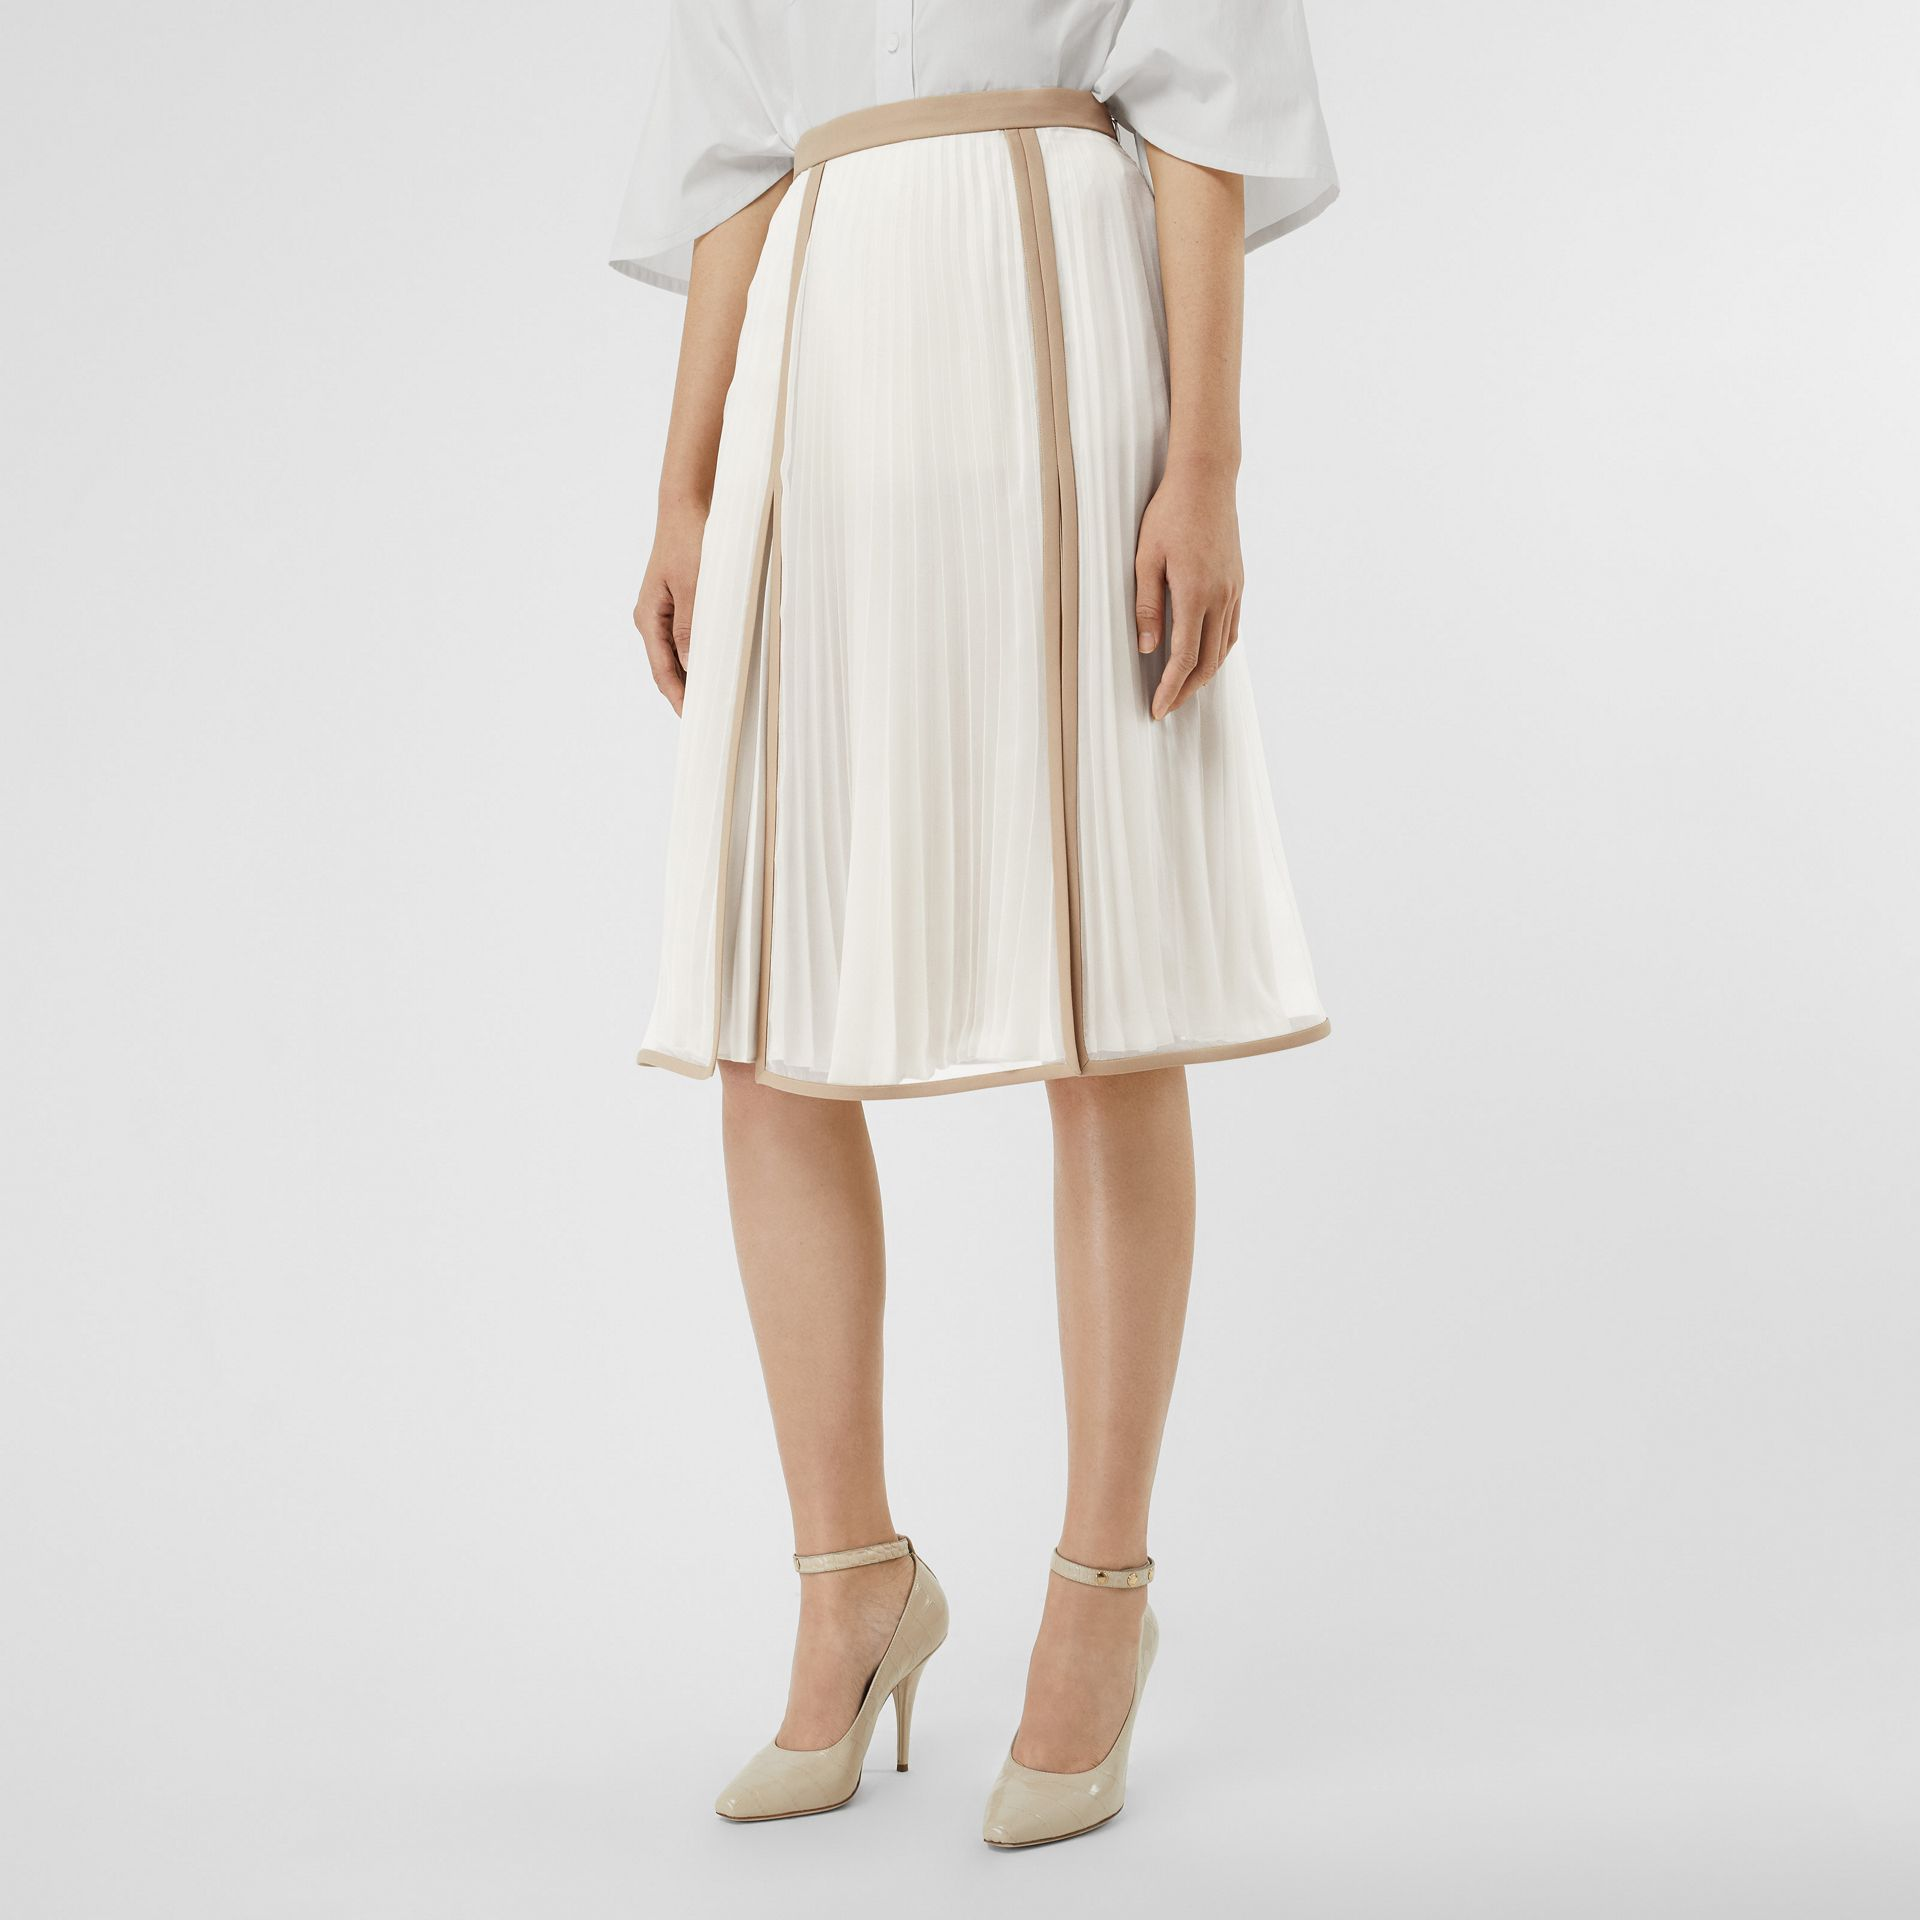 Chiffon Panel Silk Pleated Skirt in Magnolia - Women | Burberry Canada - gallery image 4